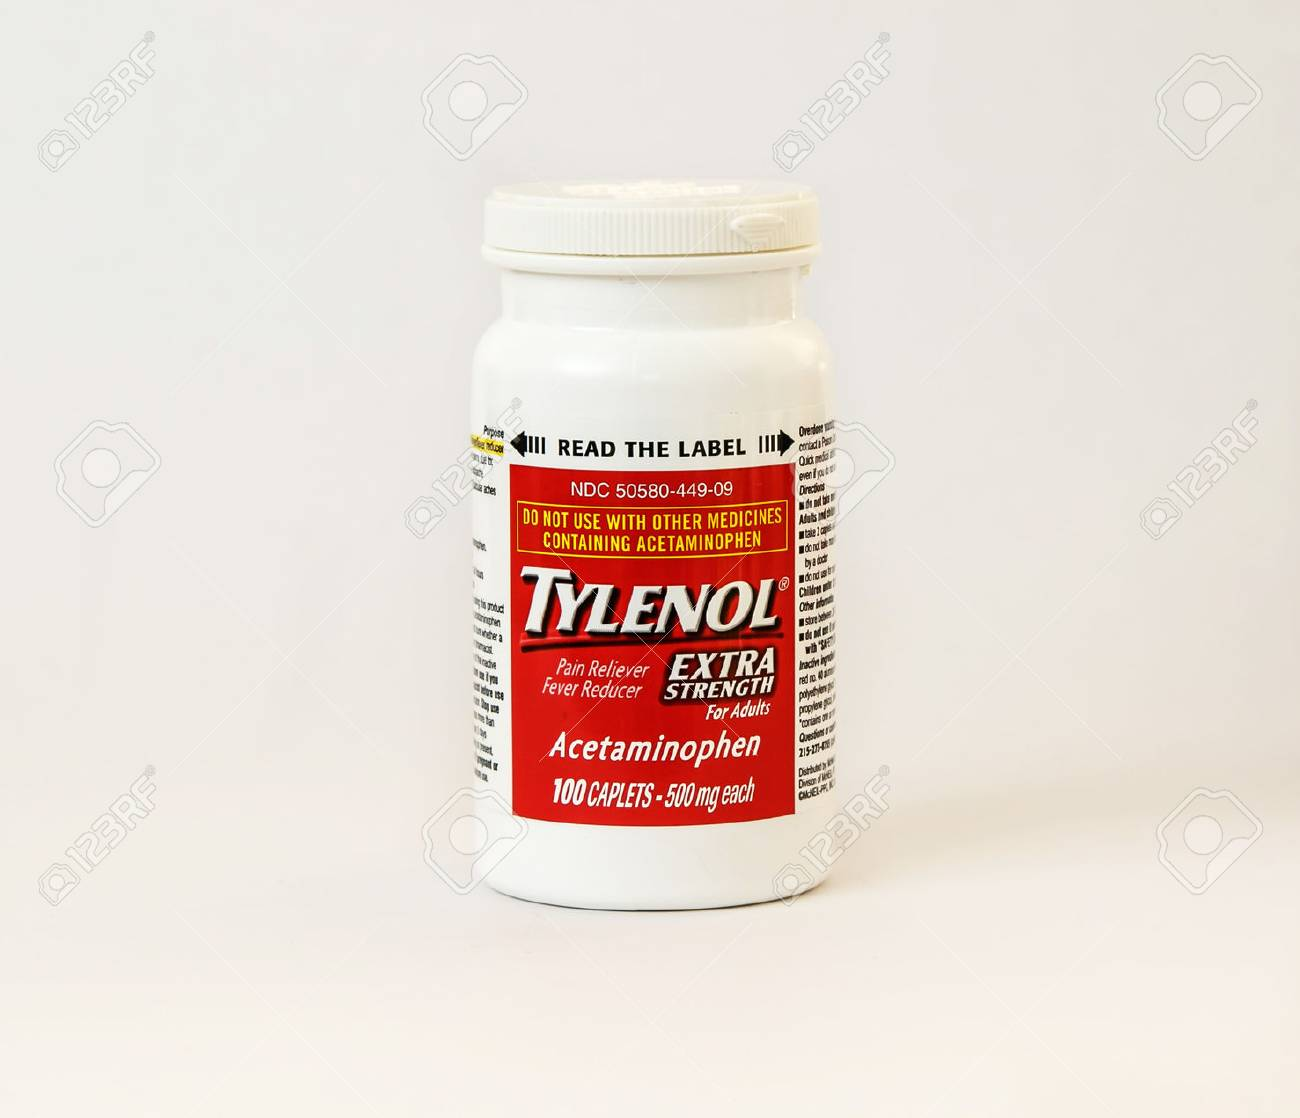 New York, December 02: A bottle of Tylenol pain reliever pills isolated on white. - 73837164